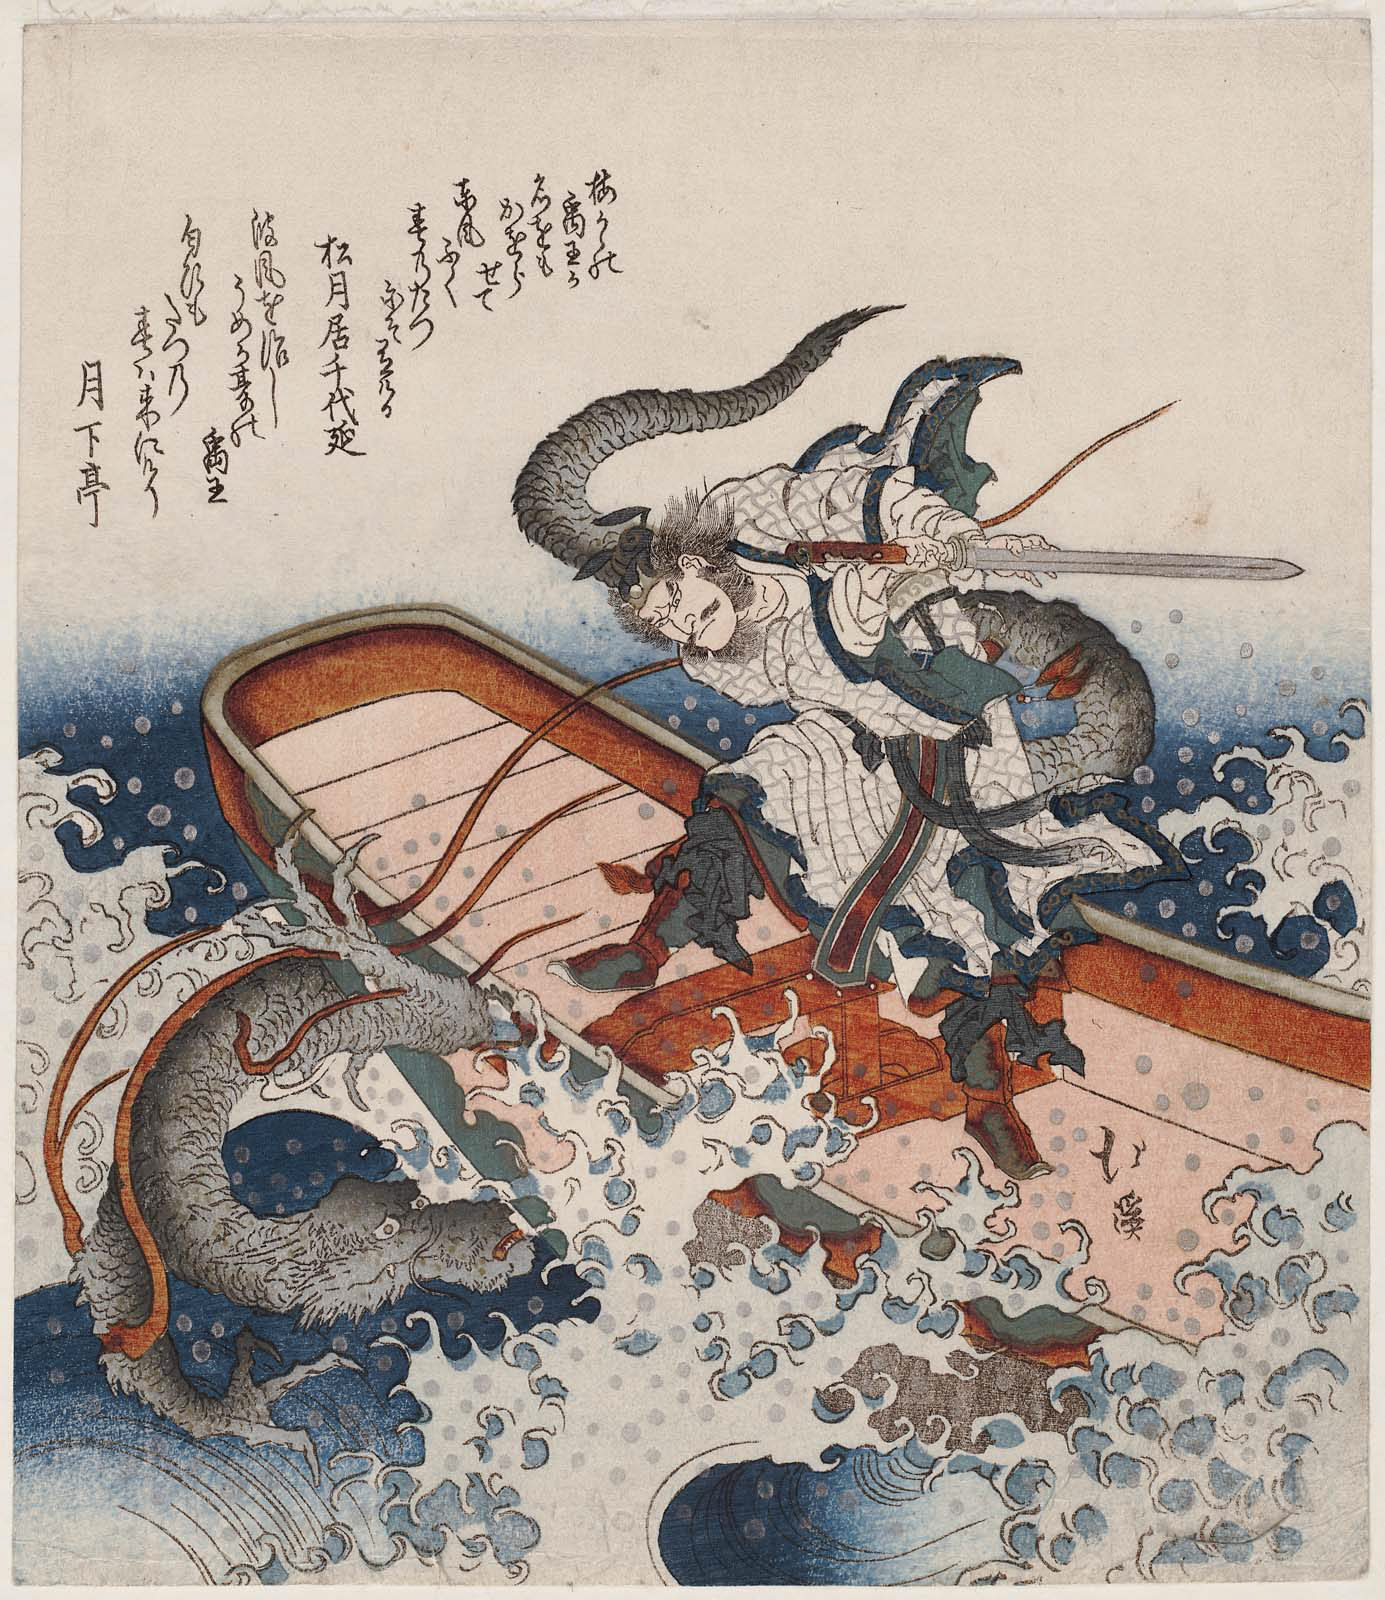 yu the great king yu of the xia dynasty fights a flood